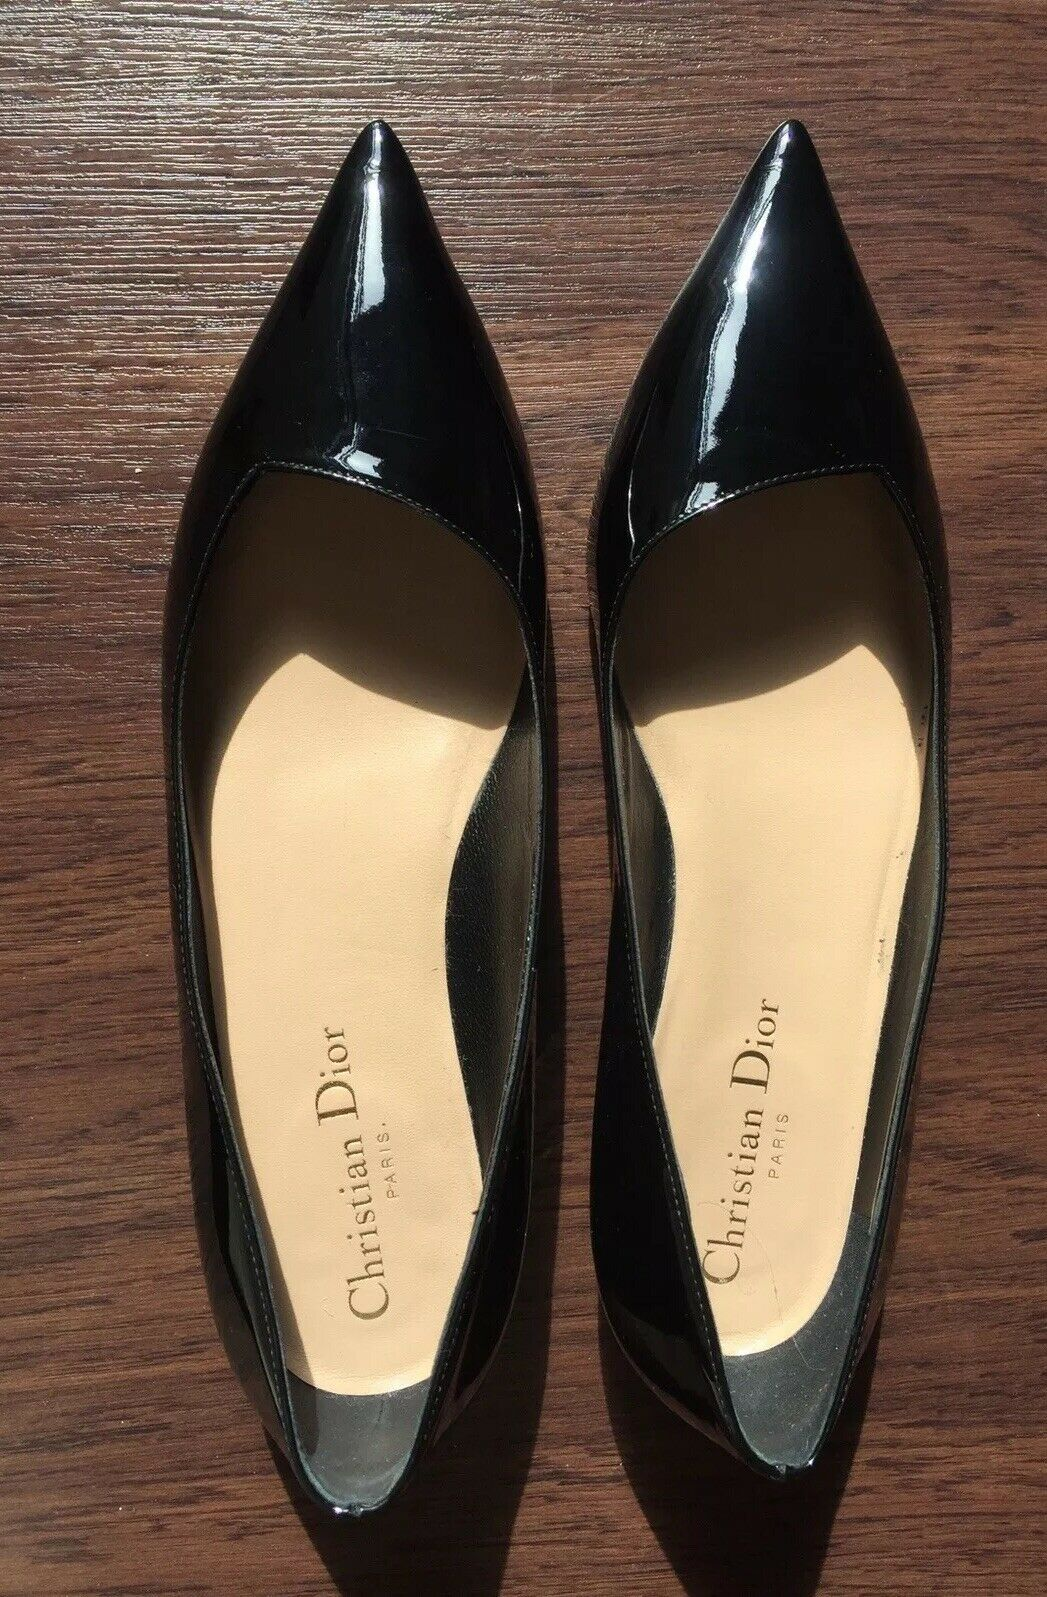 Christian Dior UNIFORM shoes  Size 36,5  USED